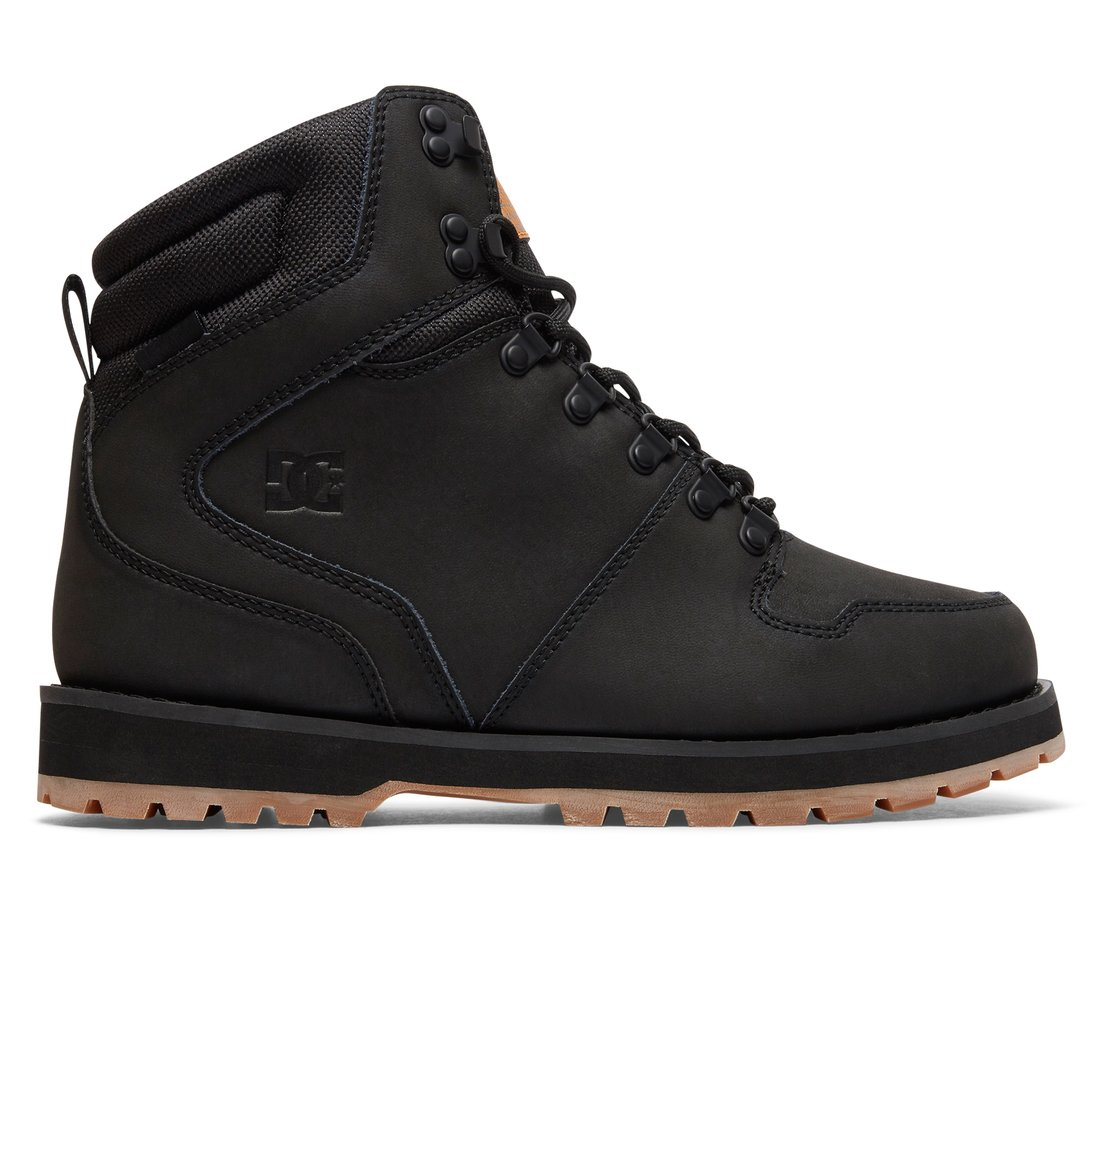 Peary - Winter Boots for Men 3613372831331 | DC Shoes